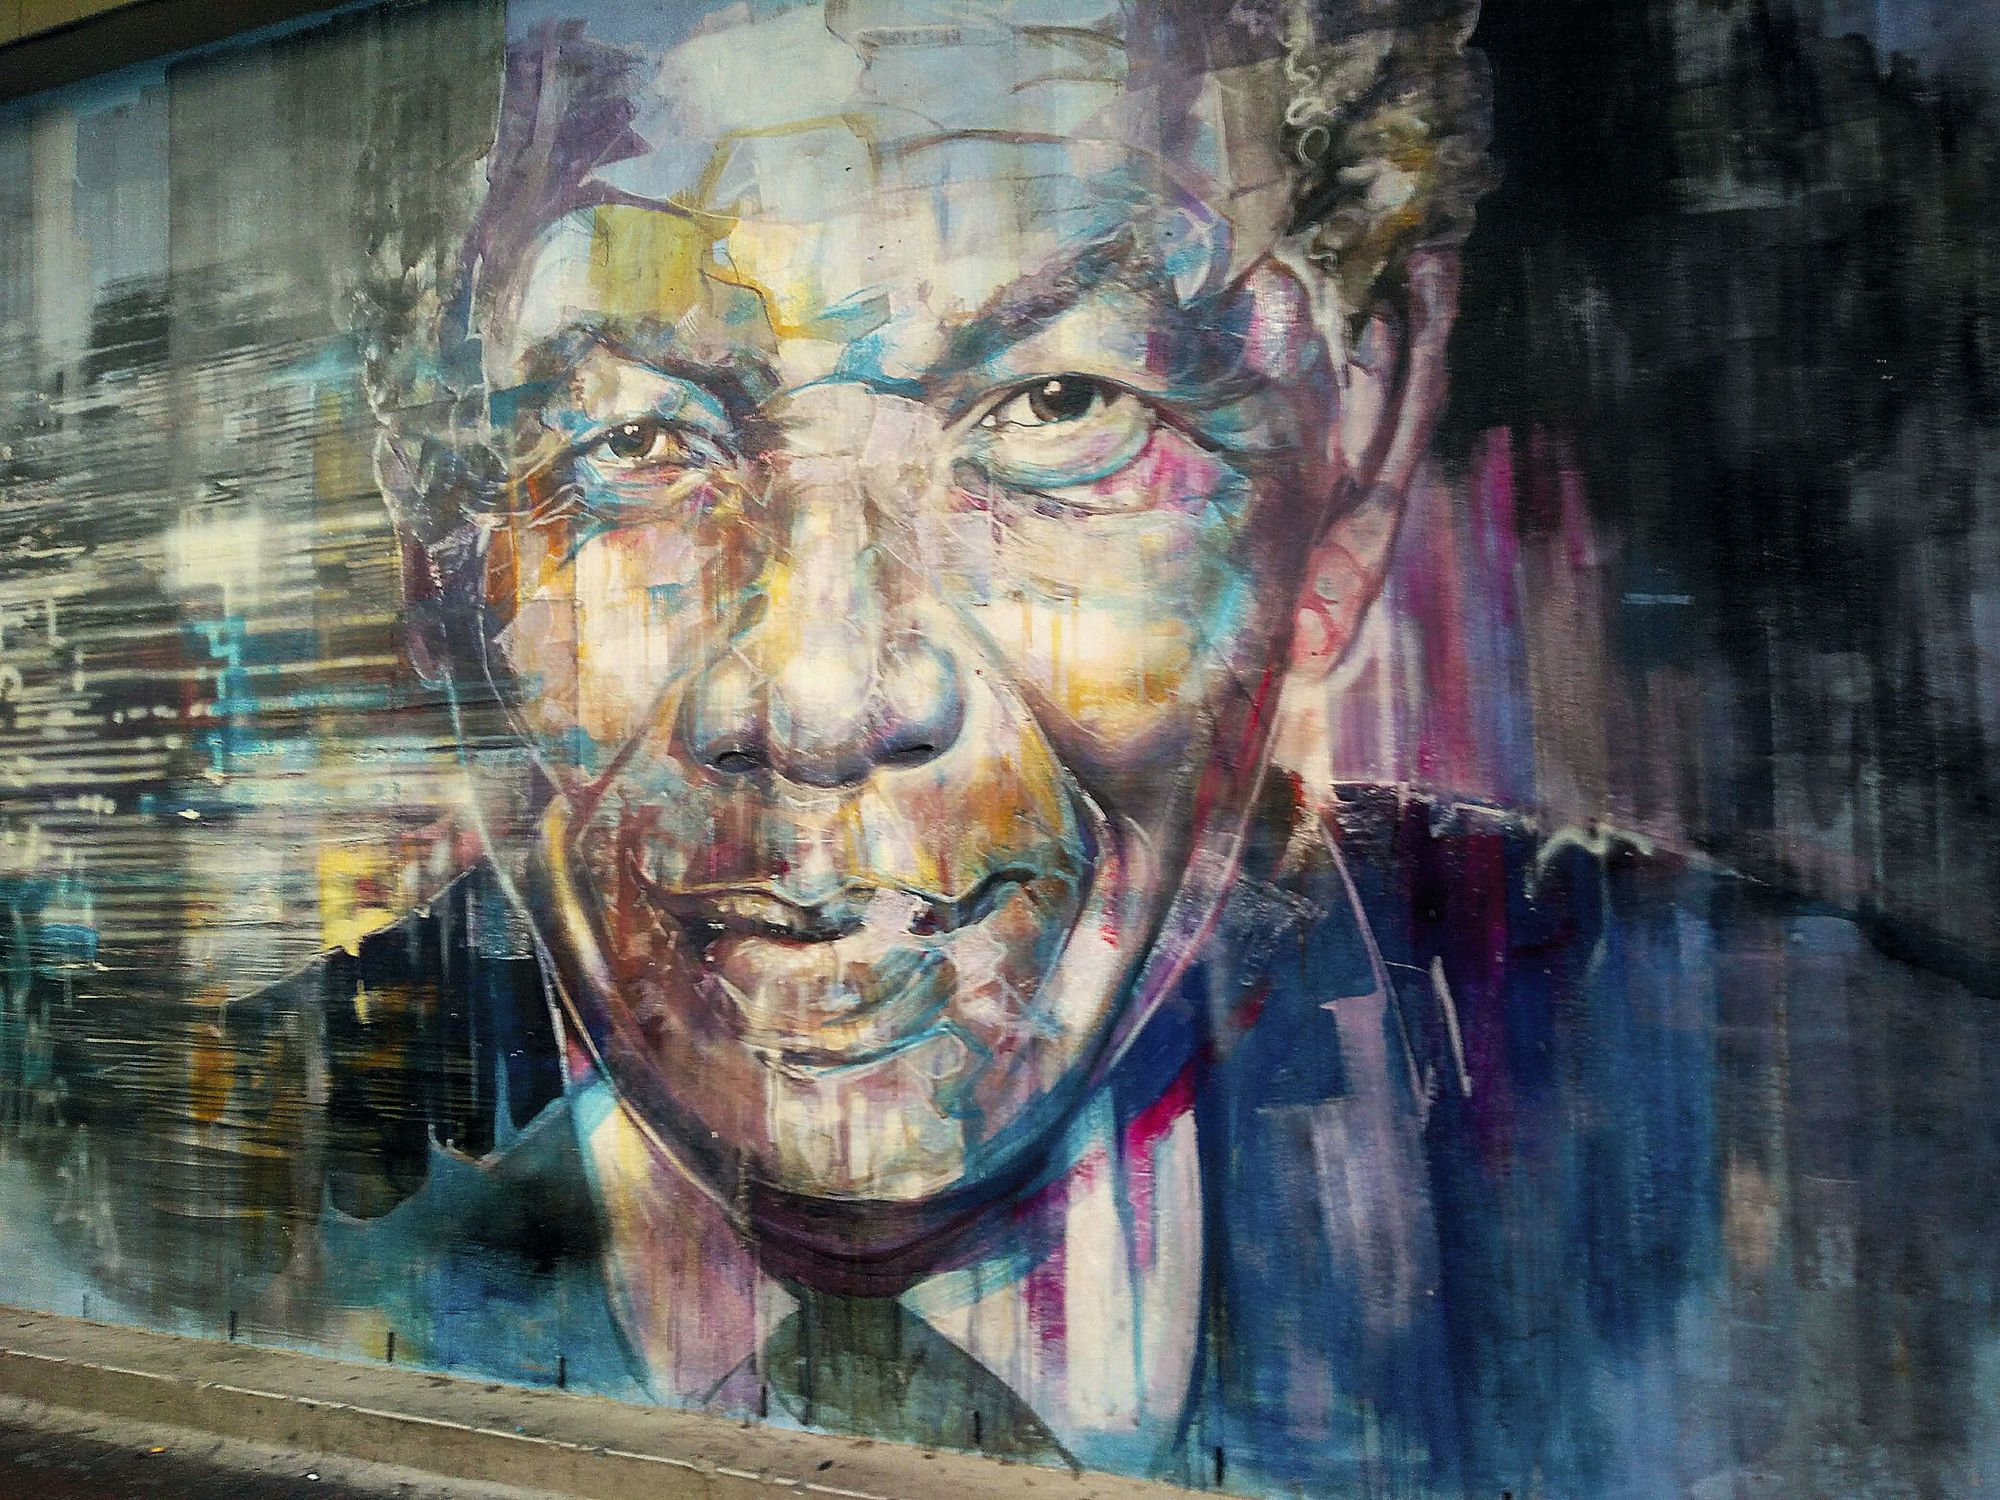 A mural paying tribute to Nelson Mandela, 2018.